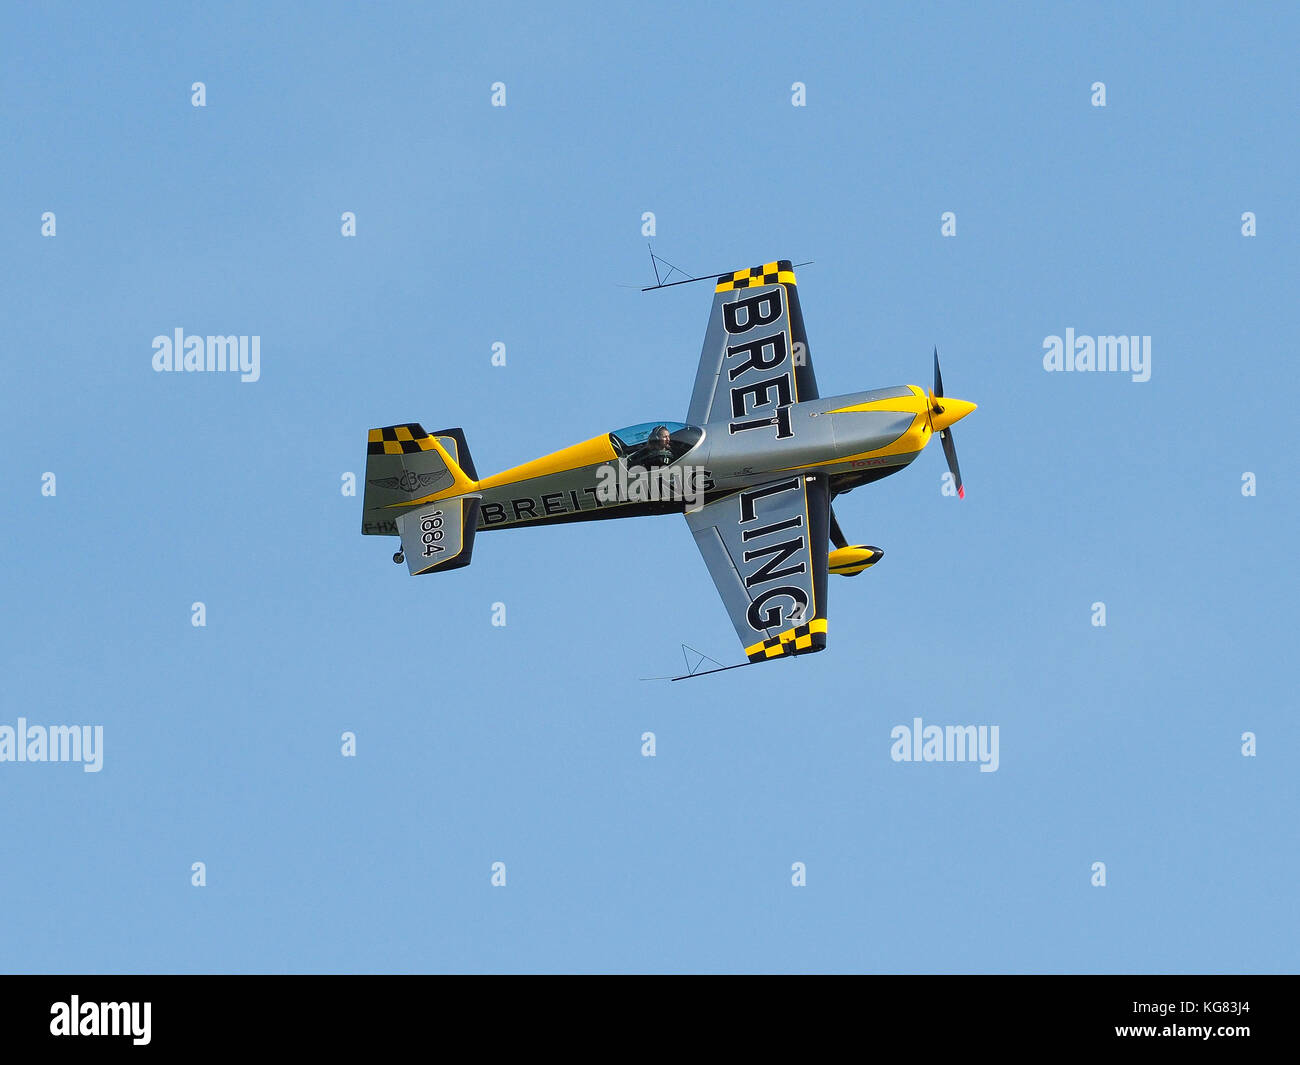 Jesolo, Italy, 27th August 2017: Aude Lemordant, female French pilot and aerobatic world champion during air show - Stock Image